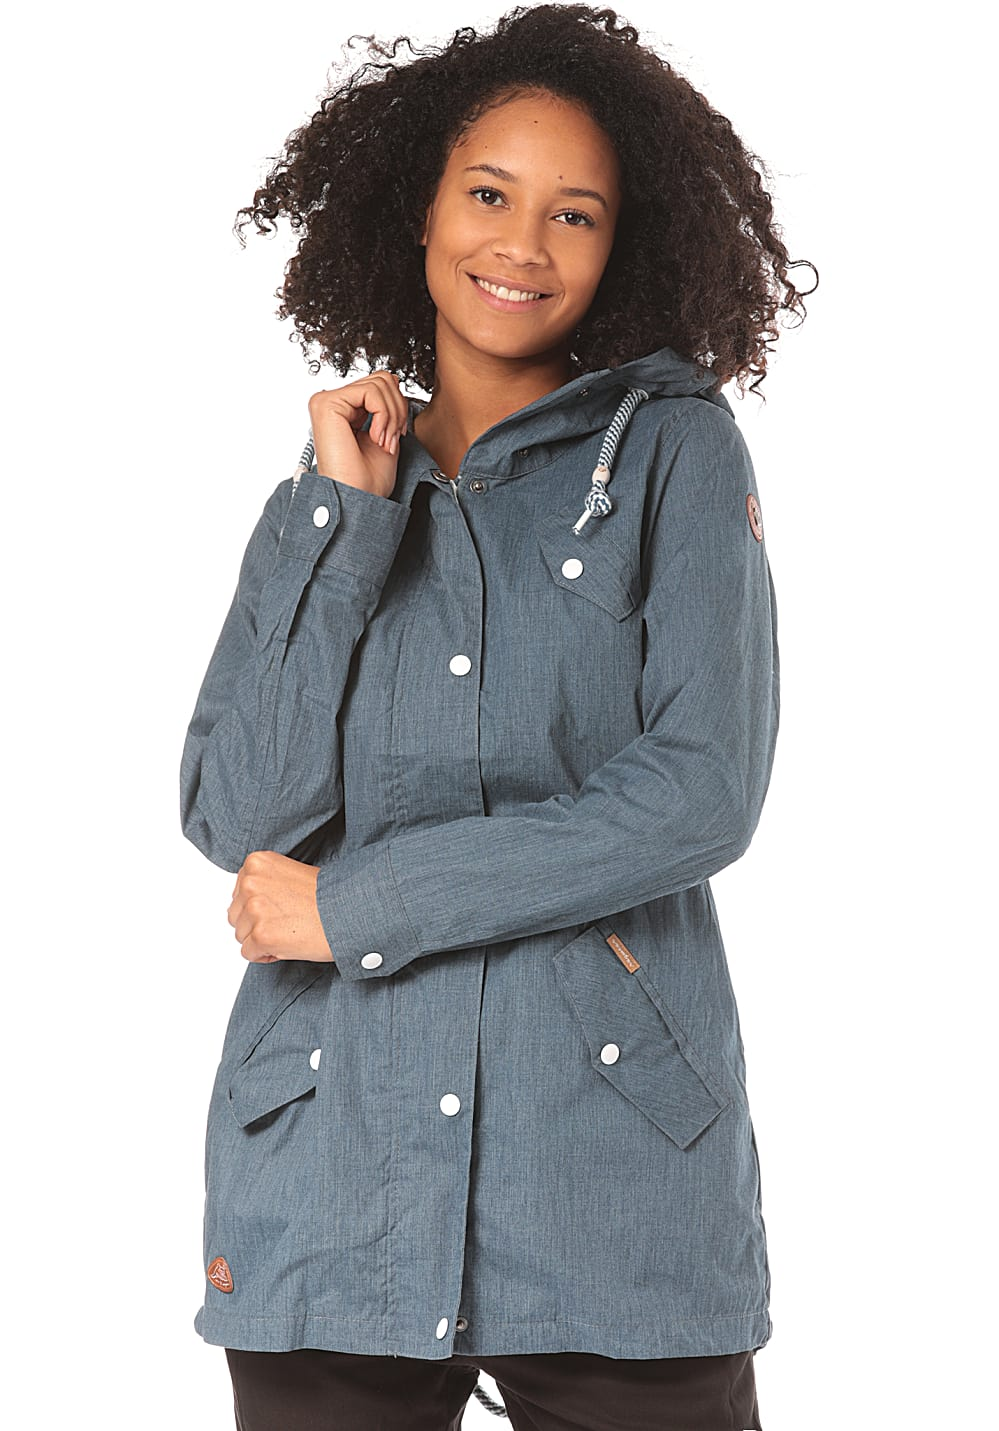 Jacken - ragwear Cranchy Jacke für Damen Blau  - Onlineshop Planet Sports